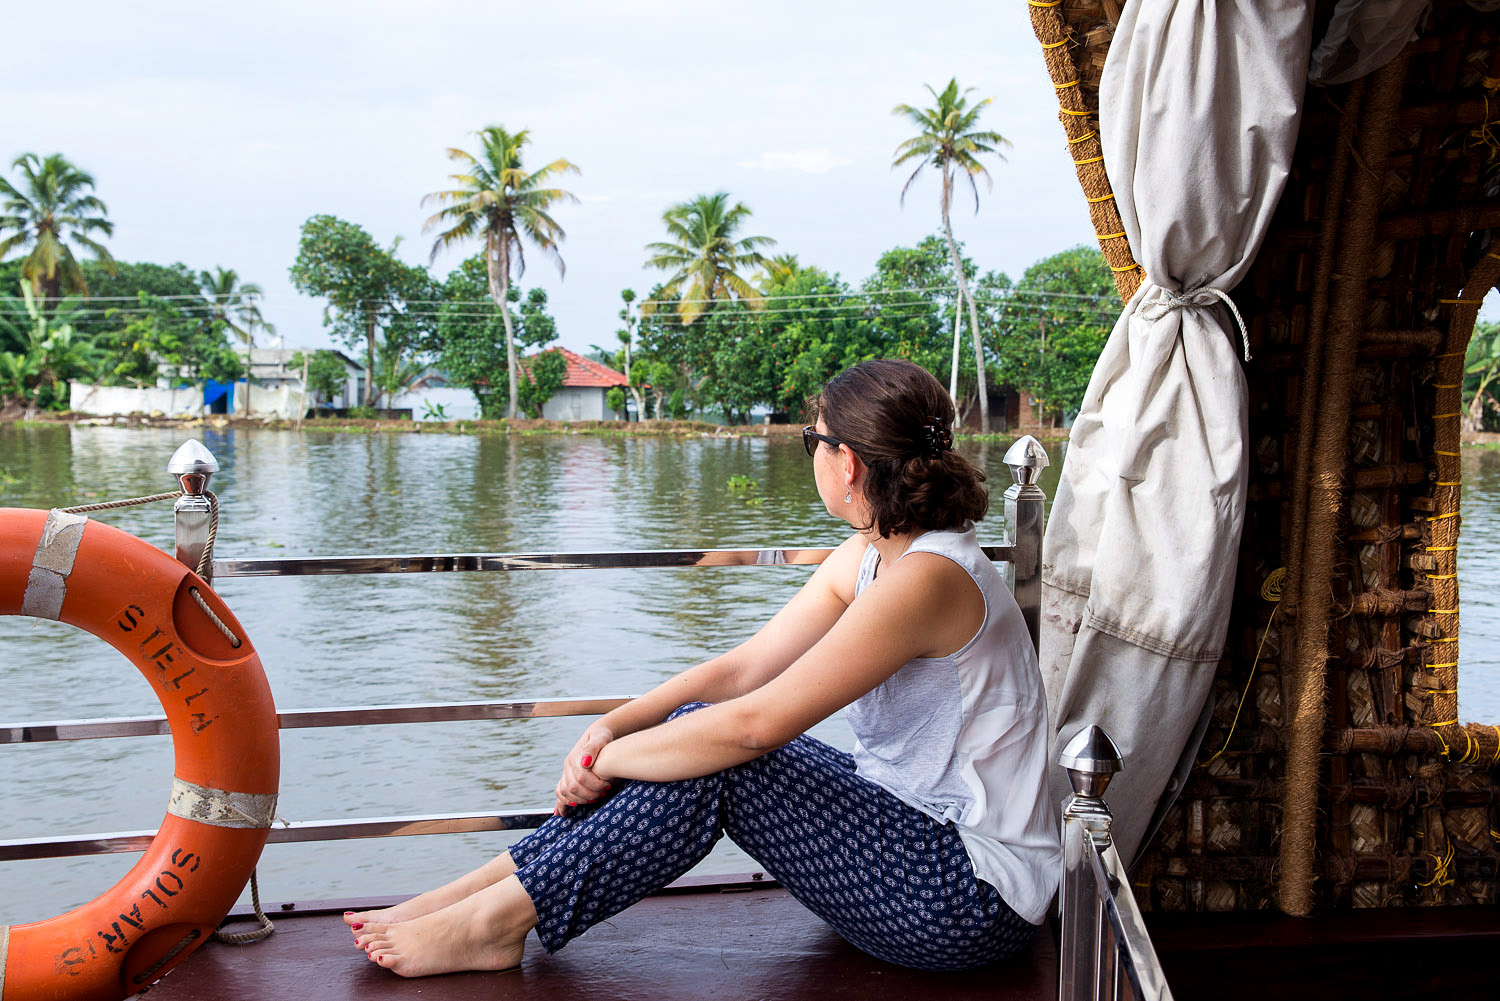 Cruising along the backwaters in Alleppey in Kerala